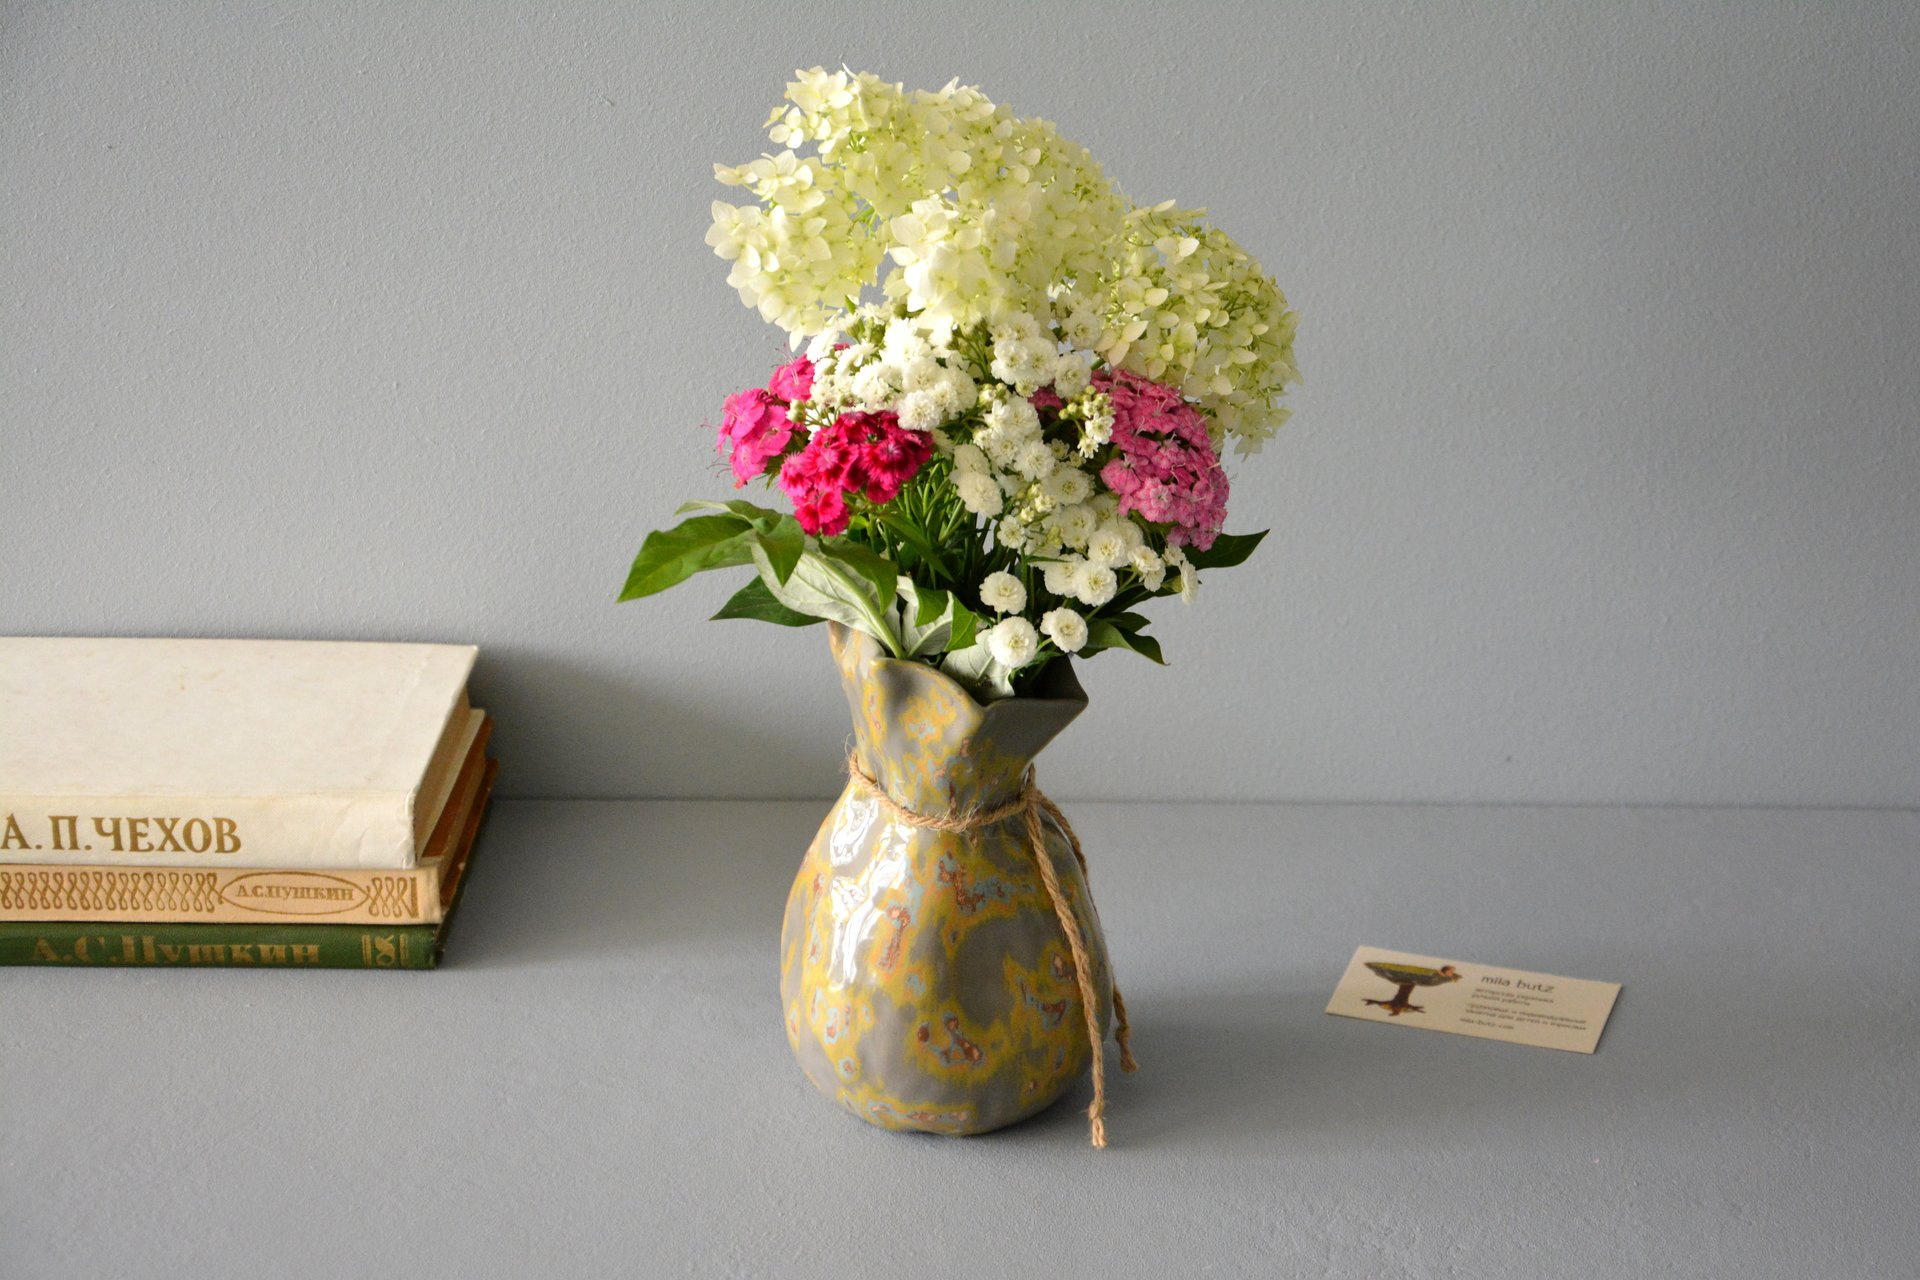 Interior vase «Shabby gray Bagful», height - 17 cm, color - gray. Photo 992.